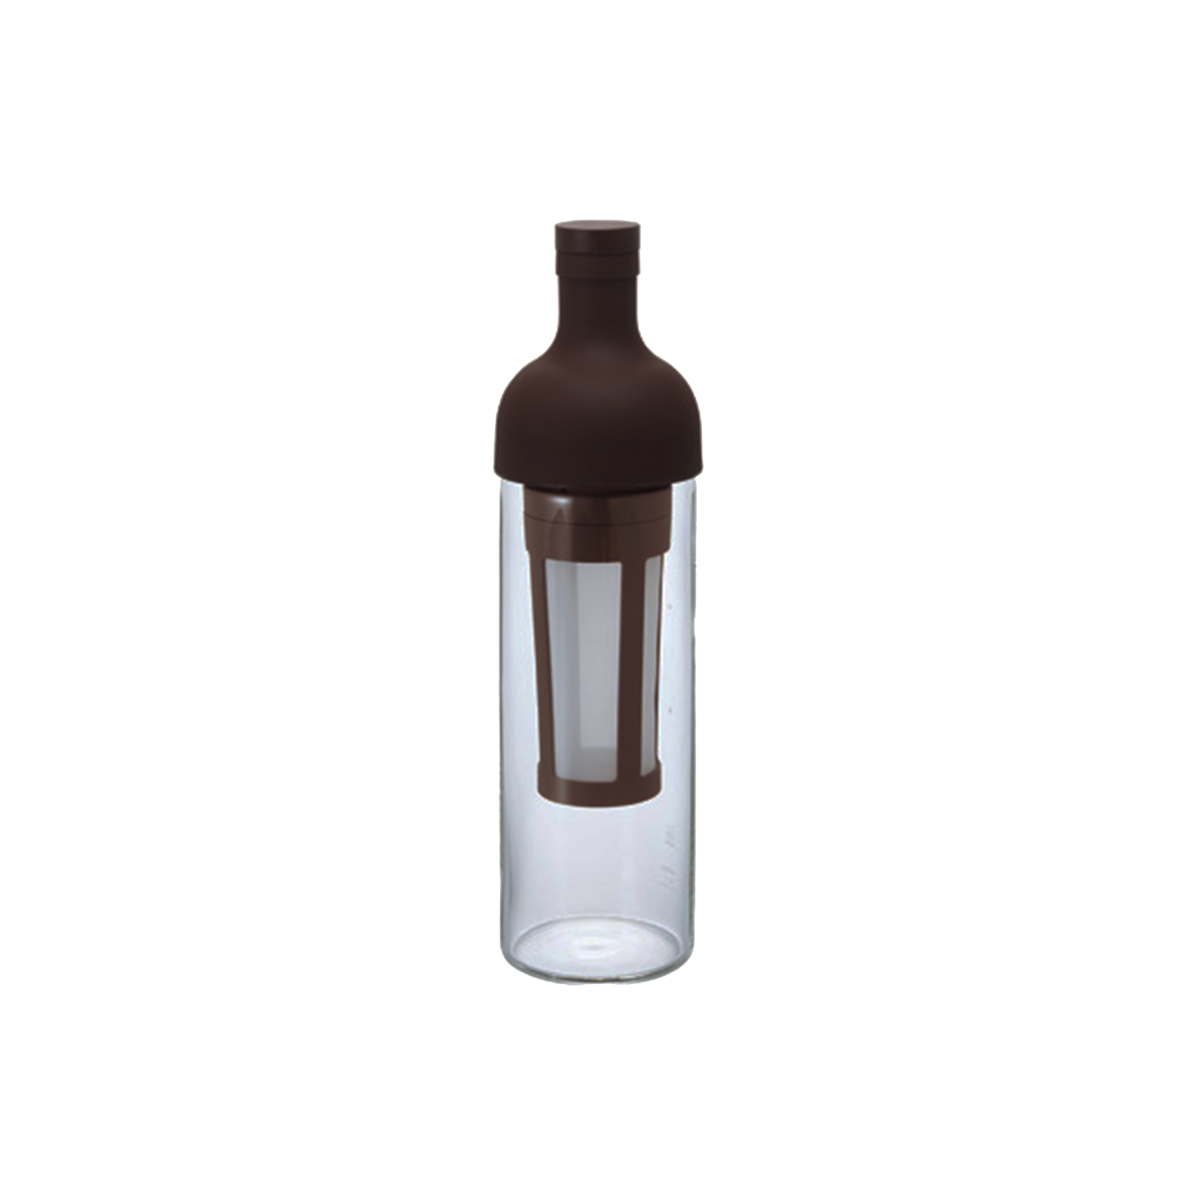 Hario Cold Brew Filter in Bottle Brown FIC-70-CBR